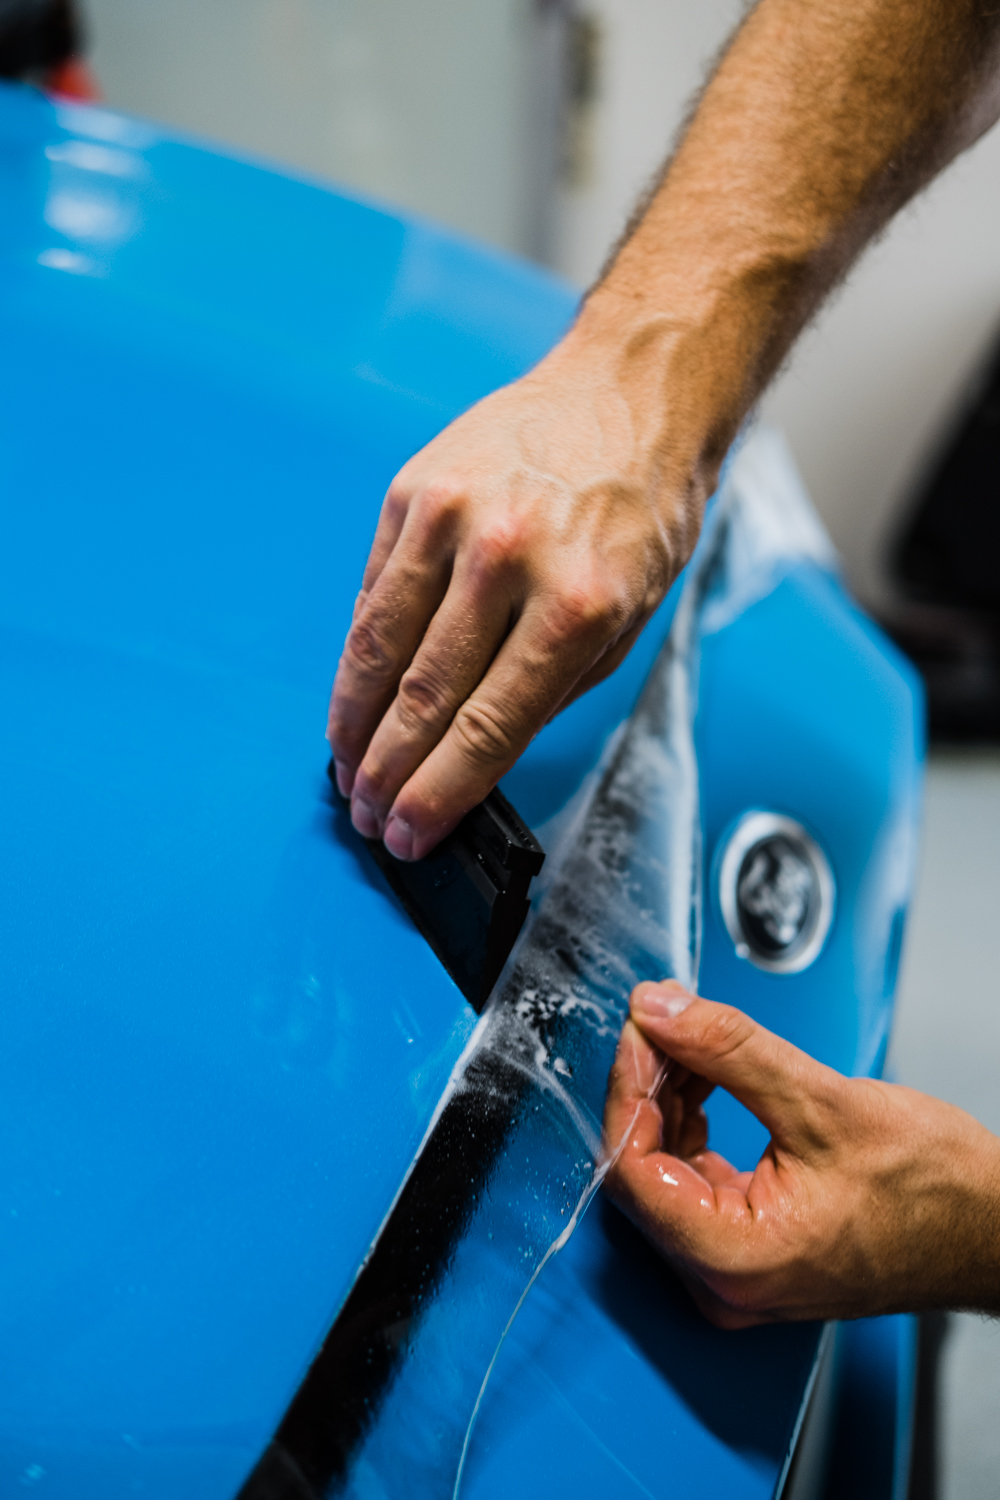 Ford Focus RS-XPEL Ultimate Paint Protection Film-Car Wash-Car Detailing-Paint Protection Film-Clear Bra-Ford Performance-118.jpg